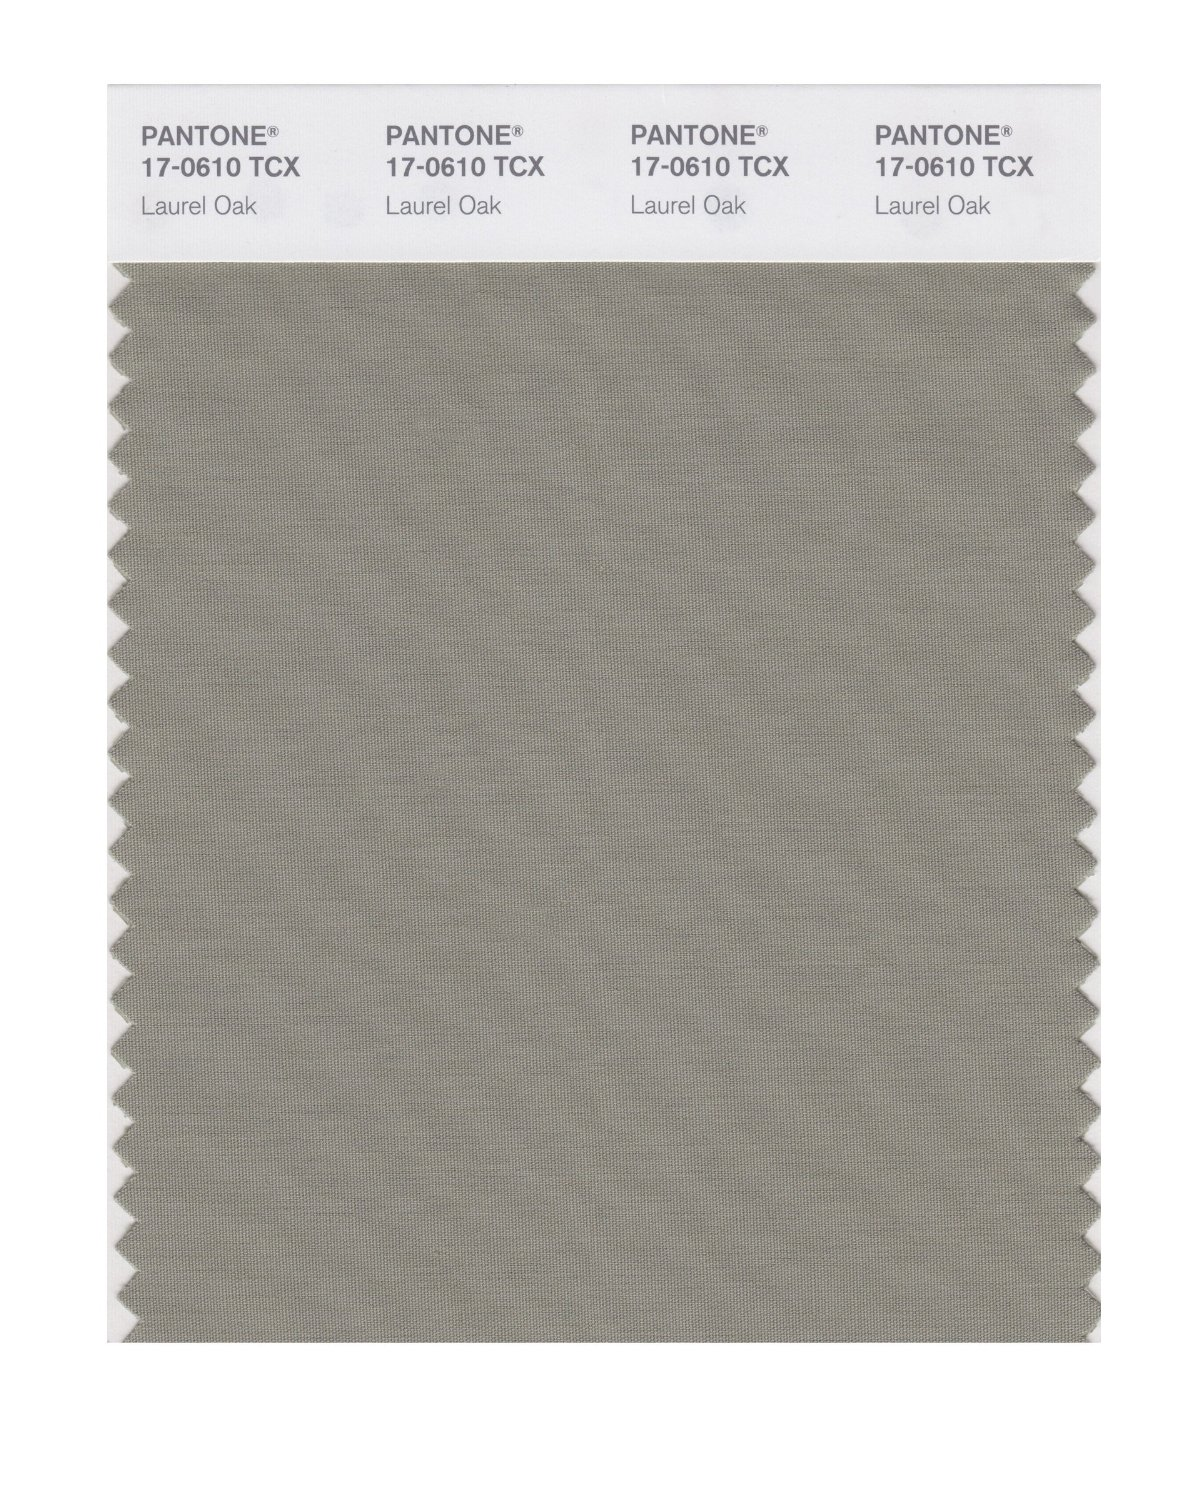 Pantone Smart Swatch 17-0610 Laurel Oak